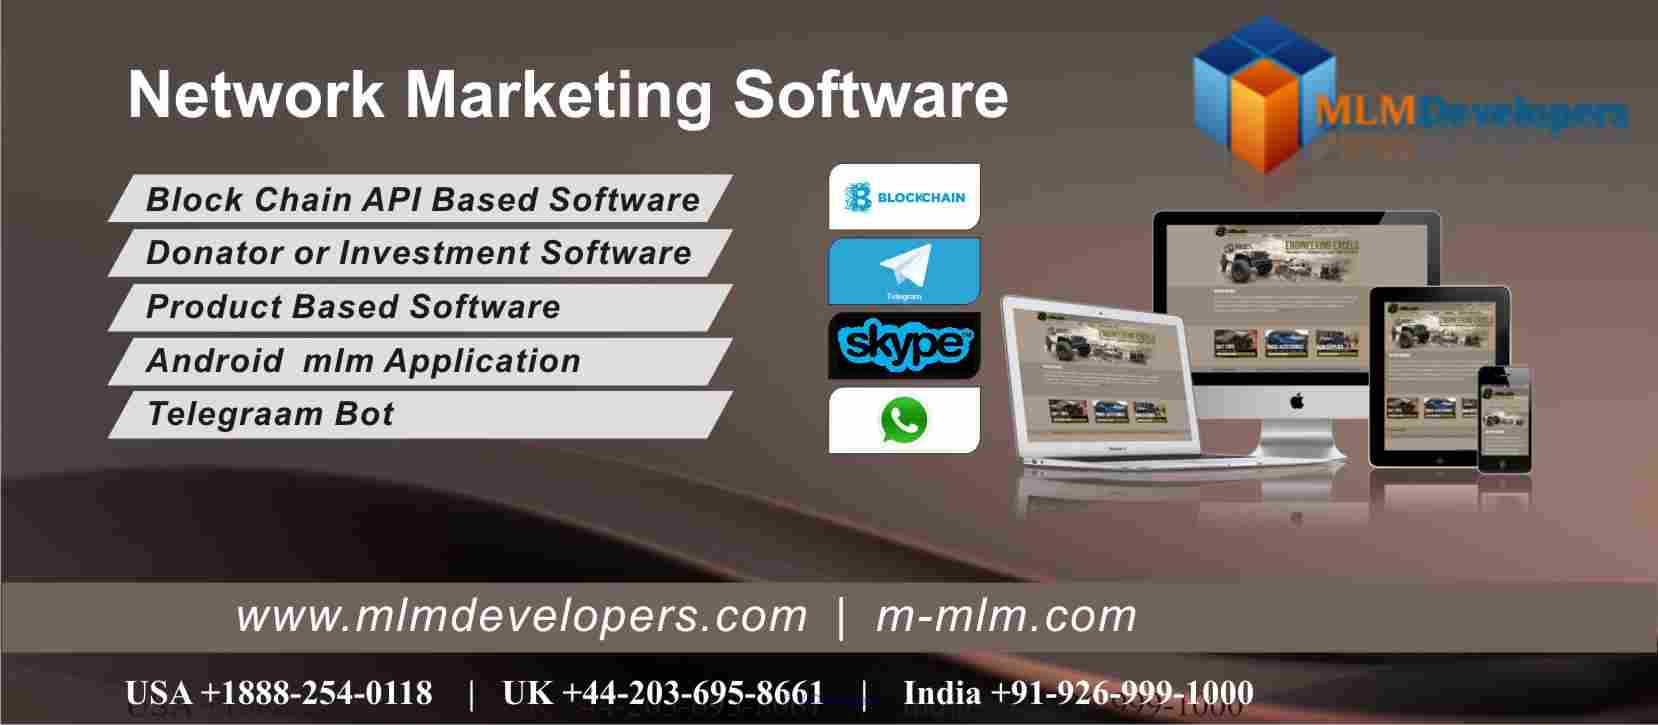 Network Marketing Software calgary